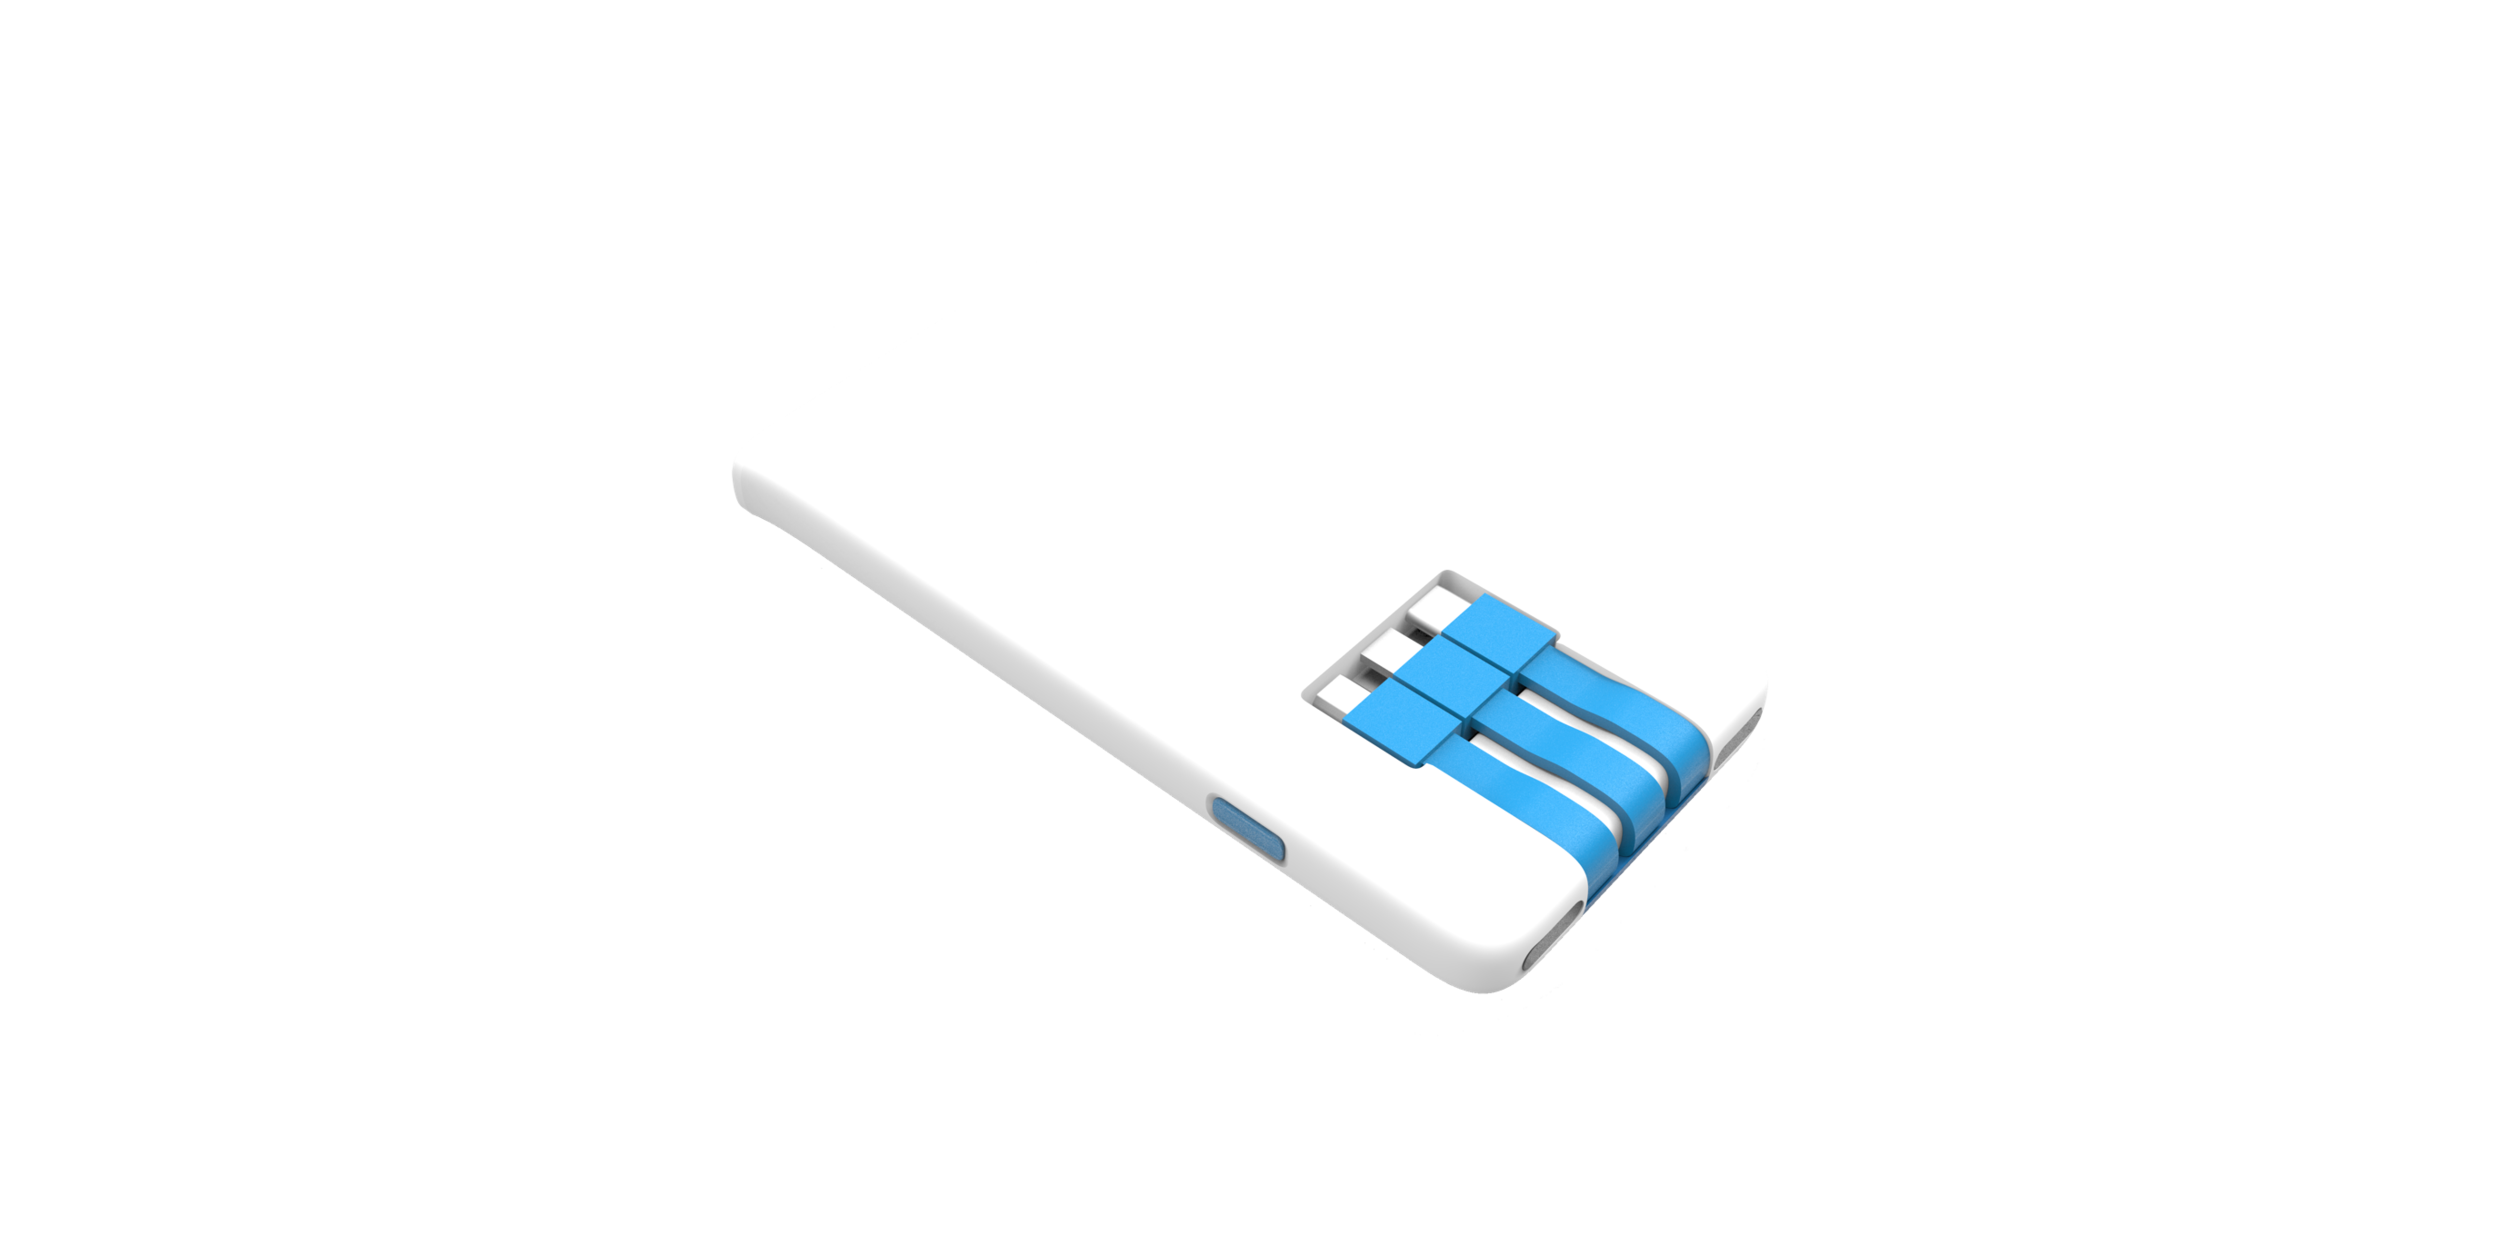 Low on Battery? - Introducing the Juixbox - an on-demand power bank featuring a Micro-USB, USB-C, and Lightning connector, designed to charge any smartphone or mobile accessory.